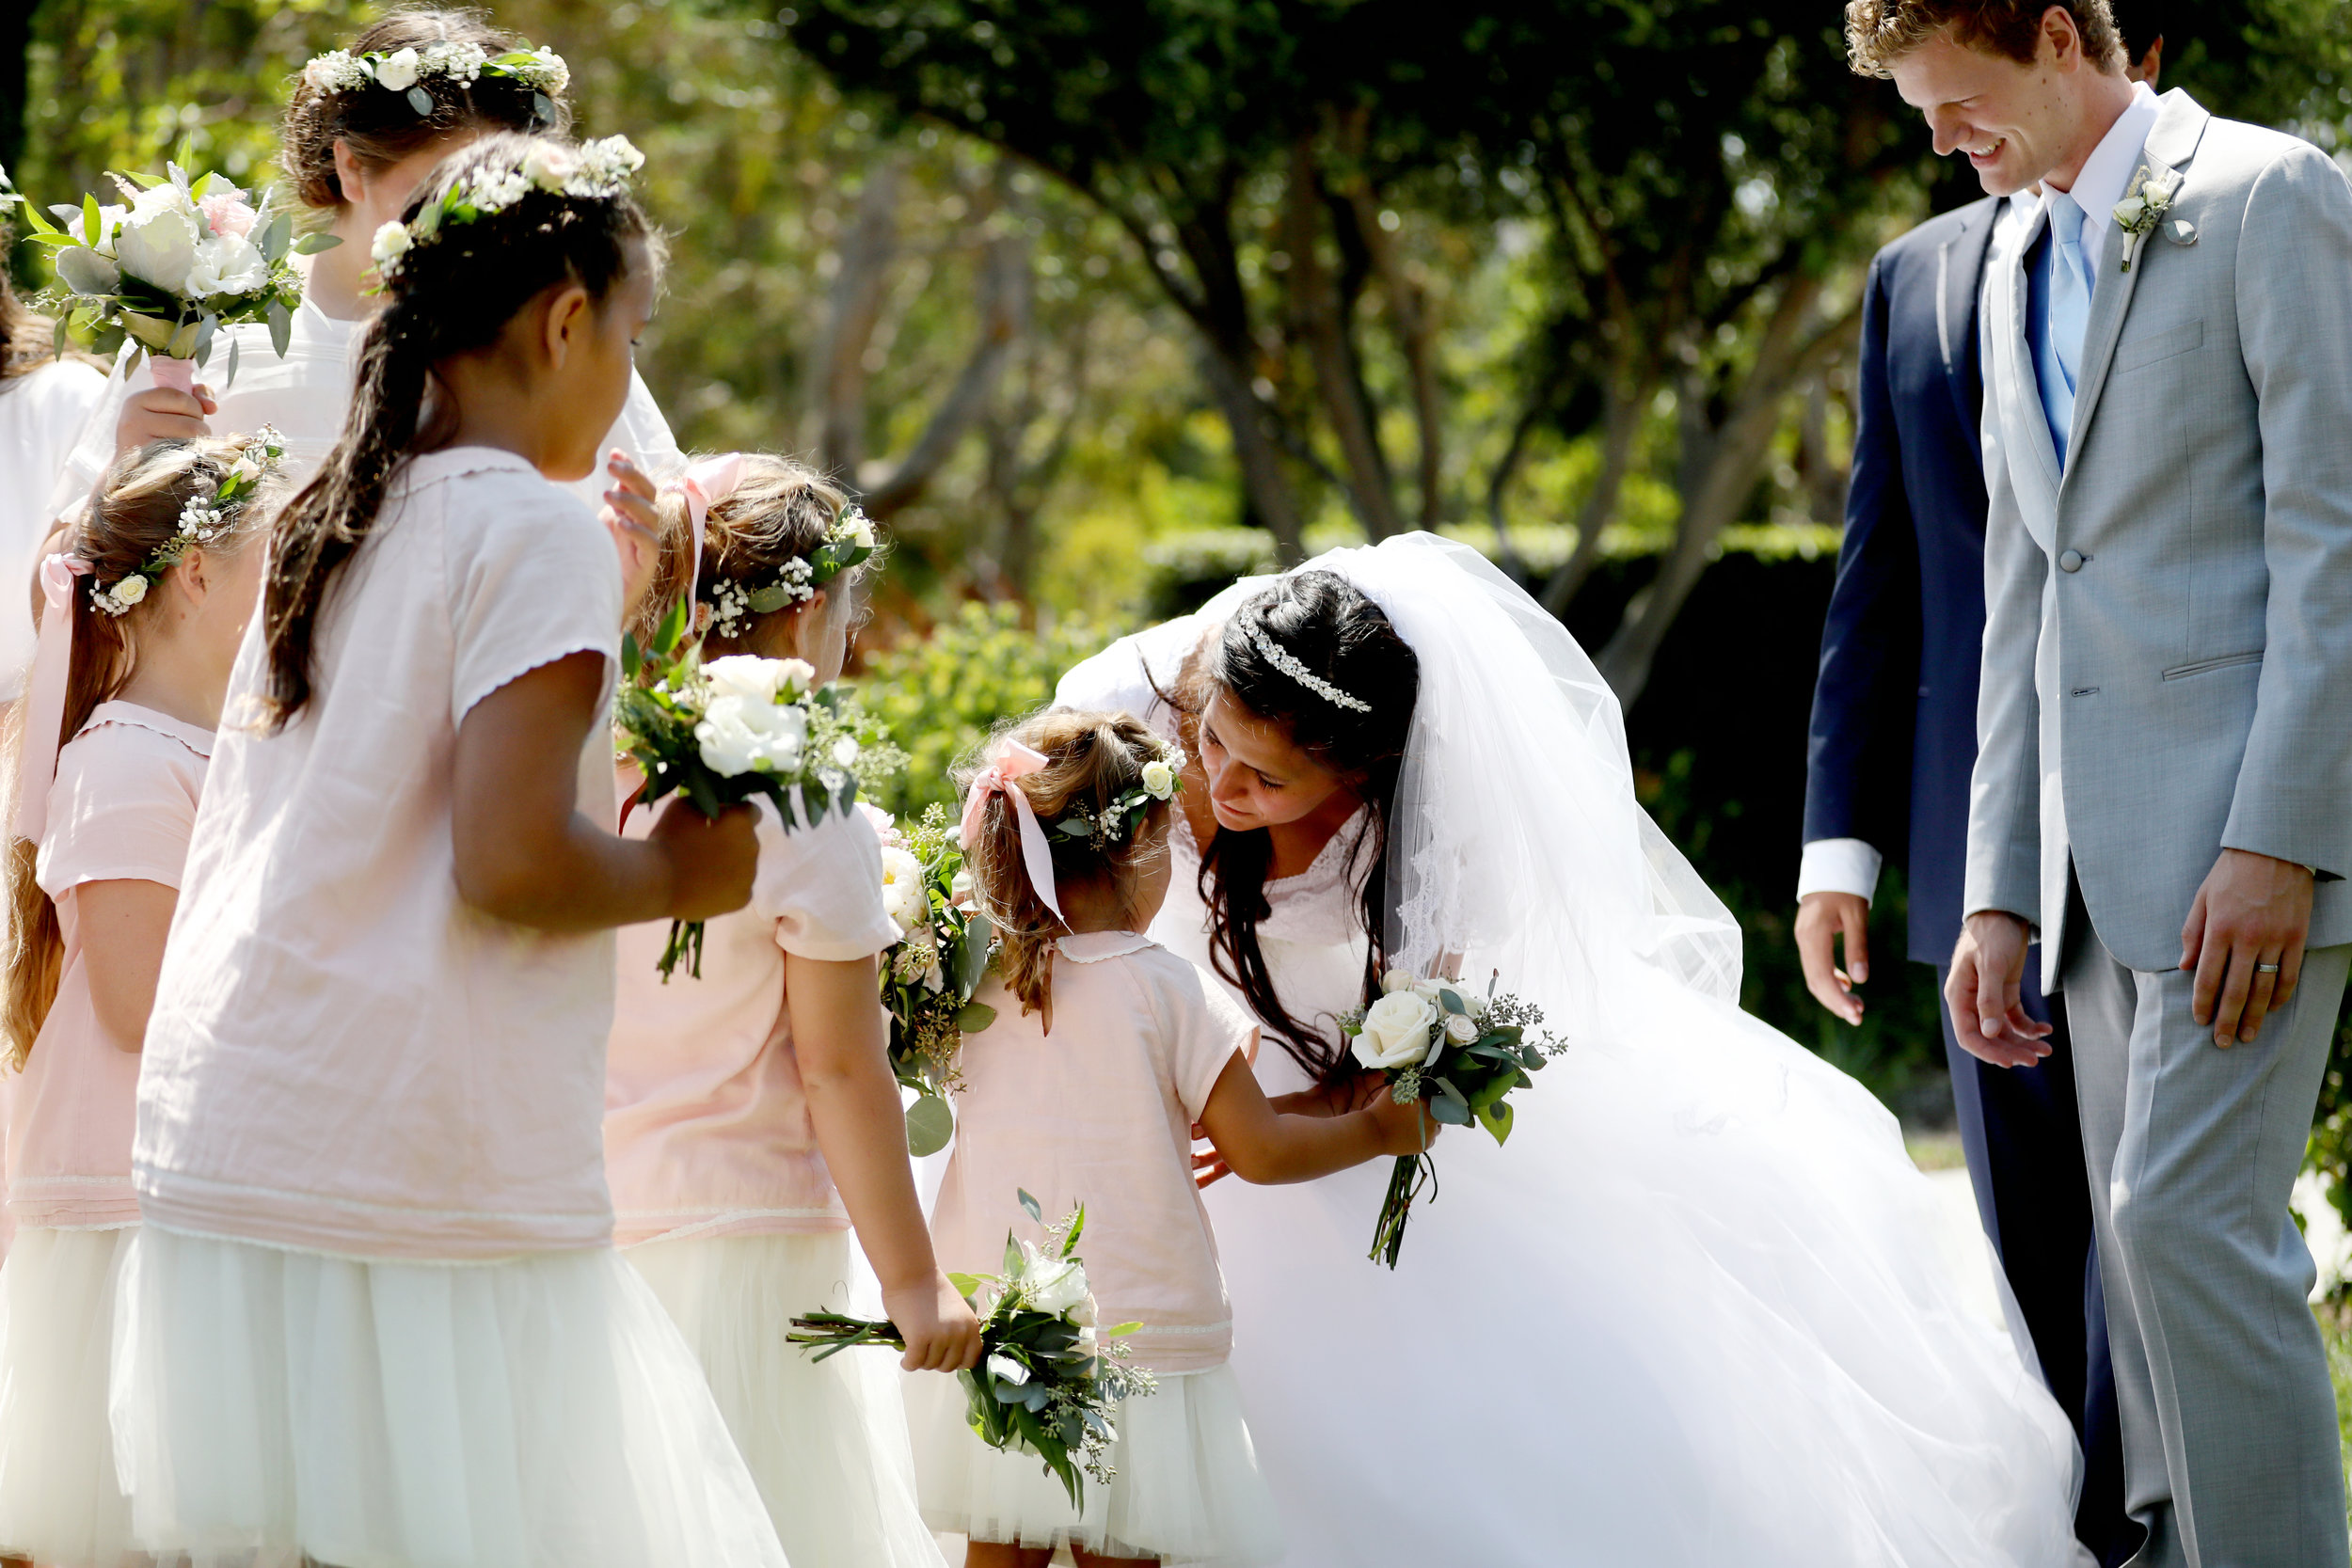 Bride with her bridesmaids and flower girl in this wedding photo of the entire wedding party.